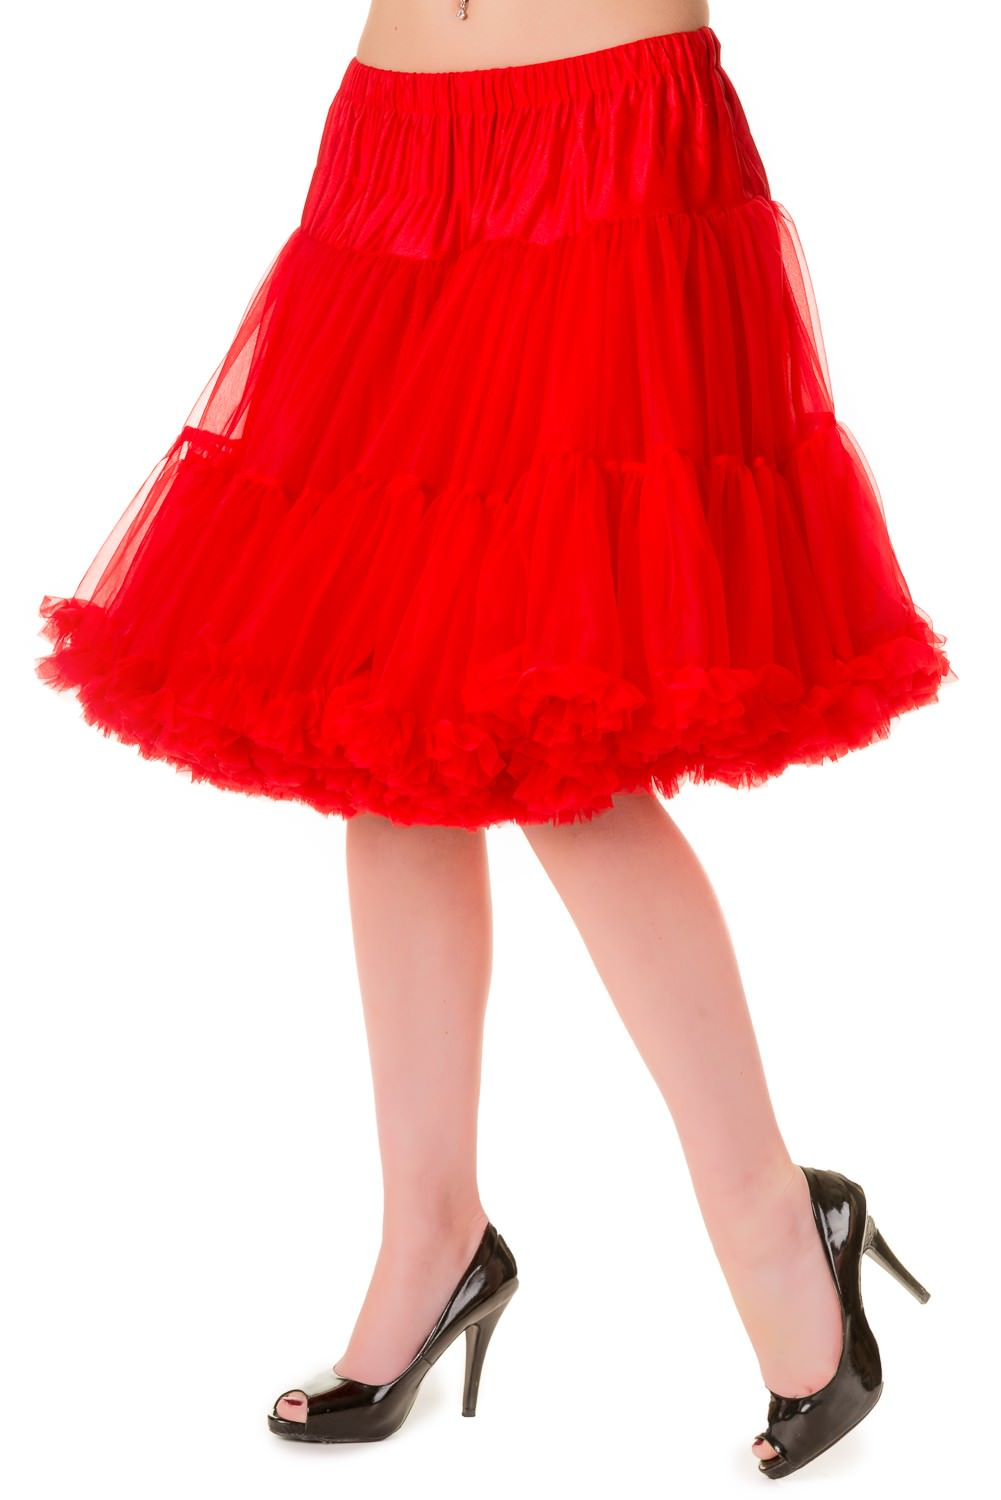 Walkabout Petticoat in Red